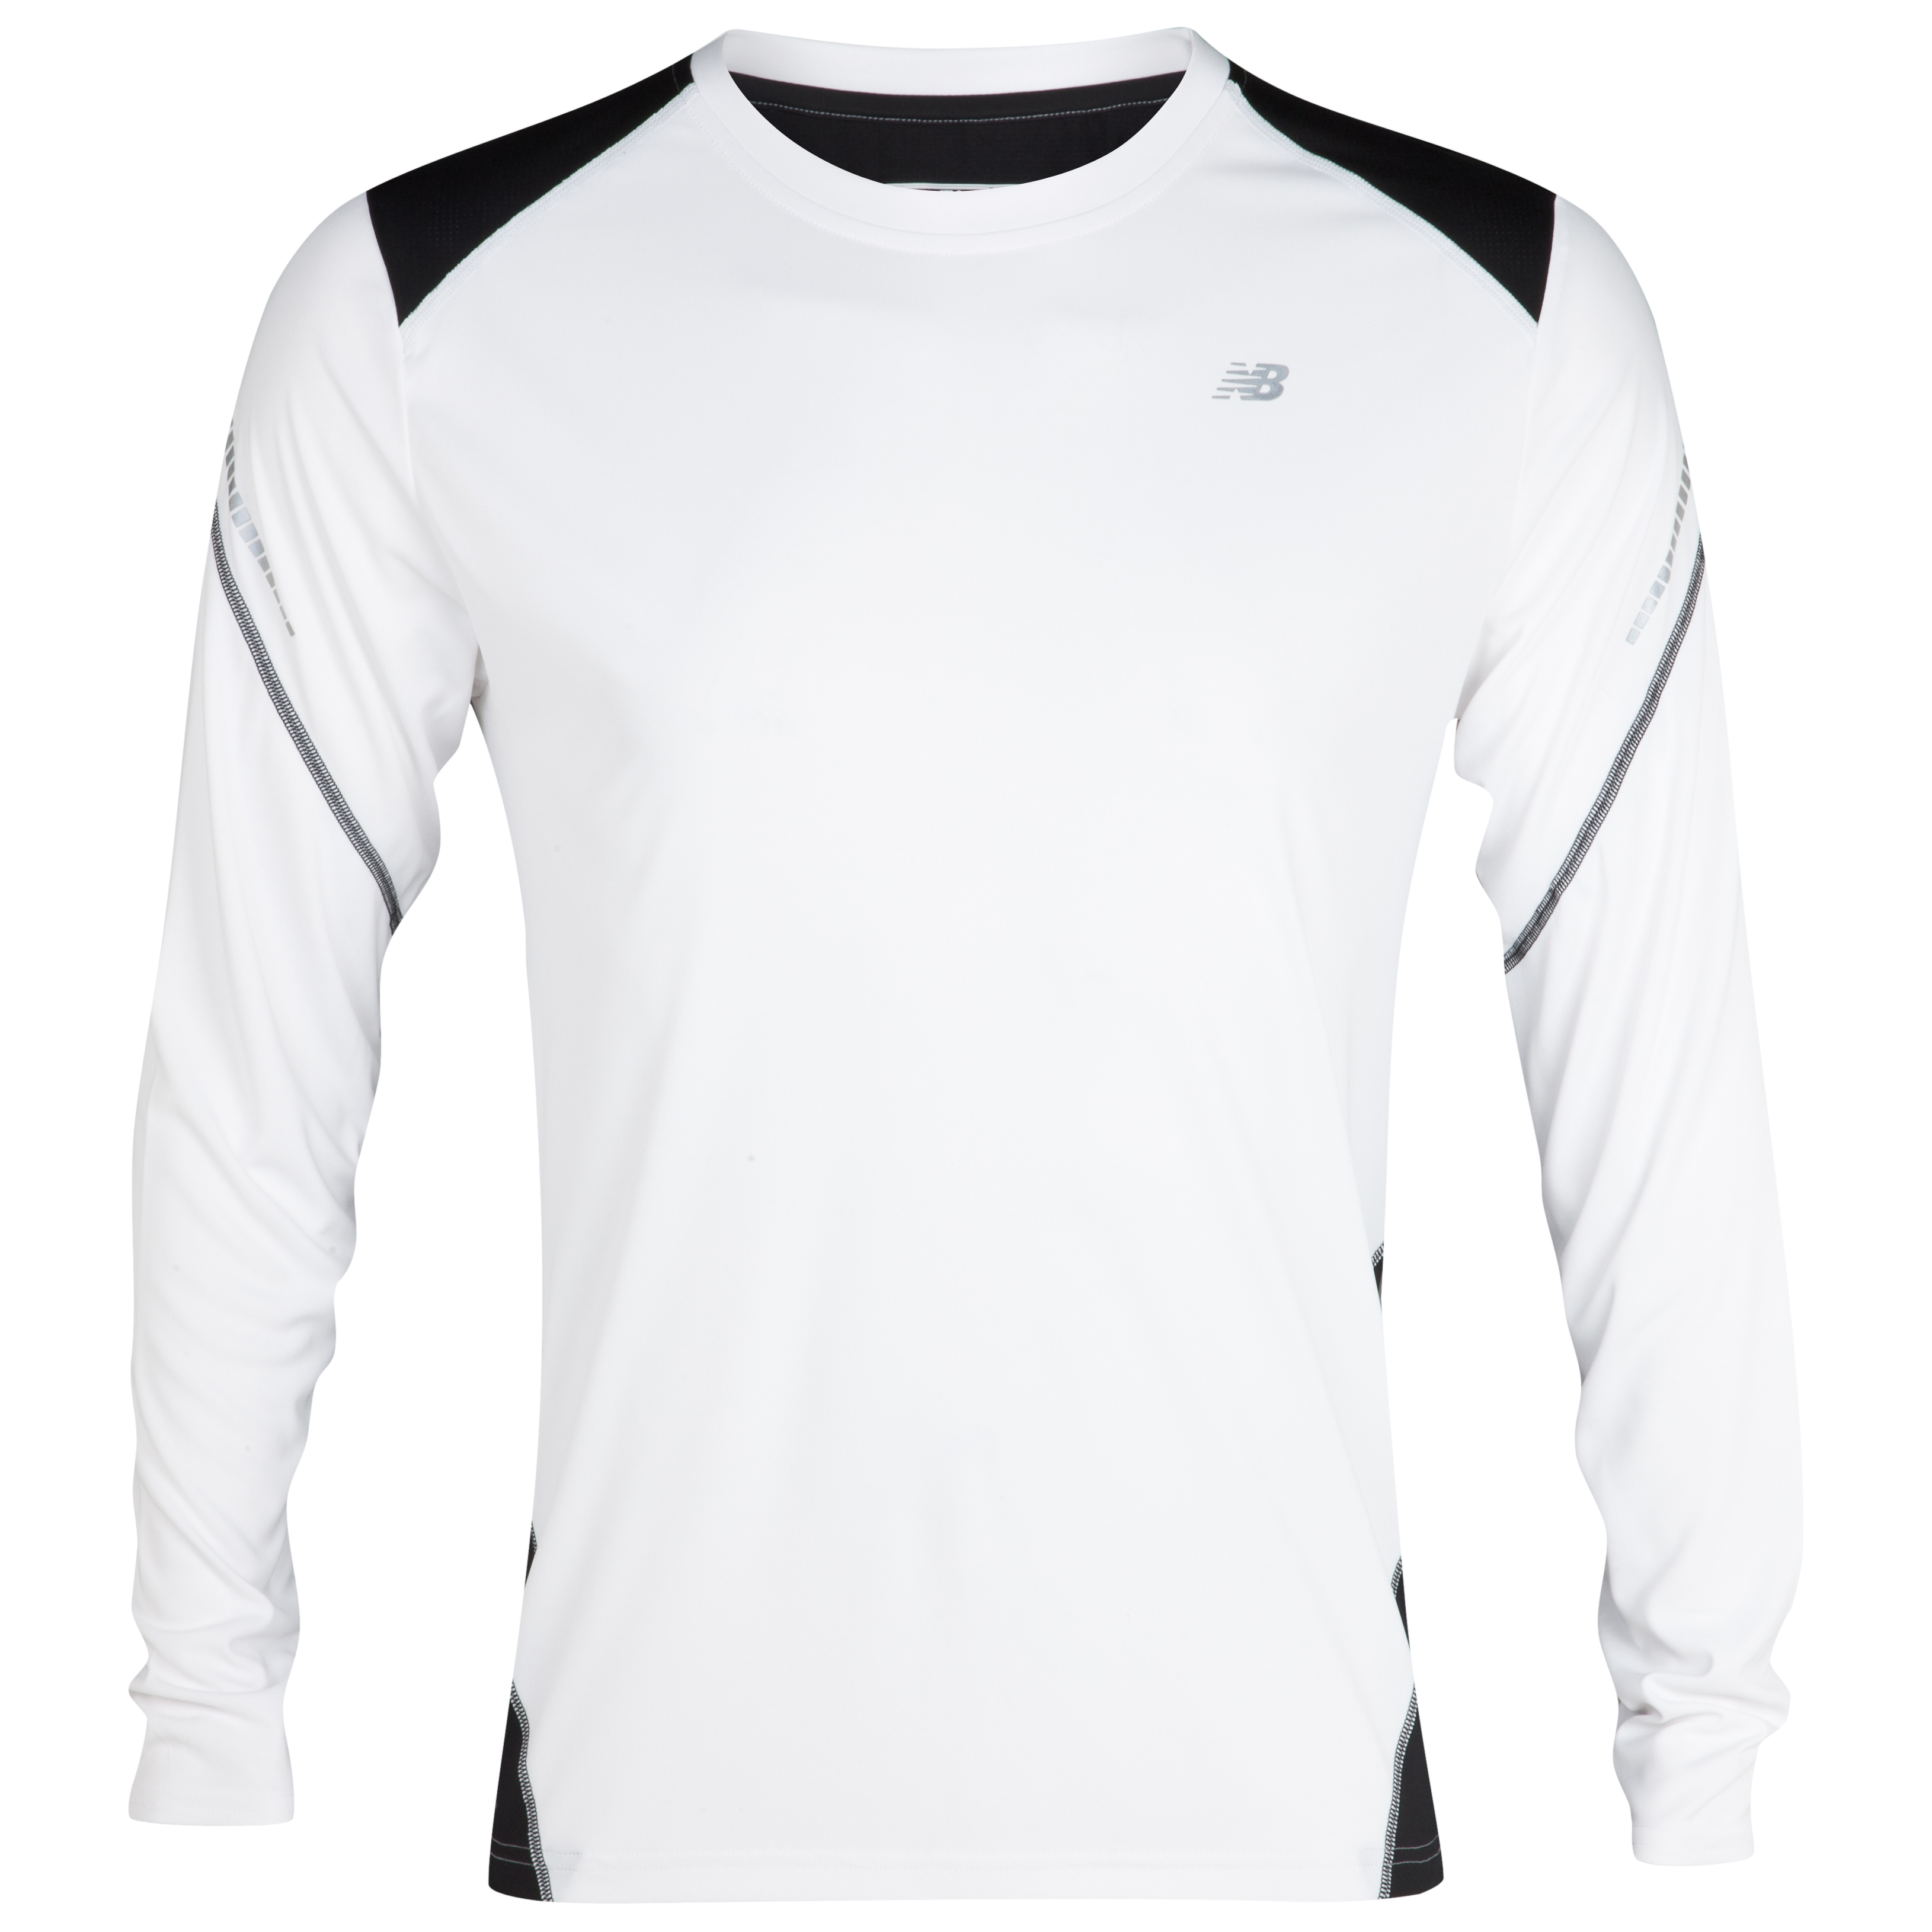 New Balance Icefil LS T-Shirt - White